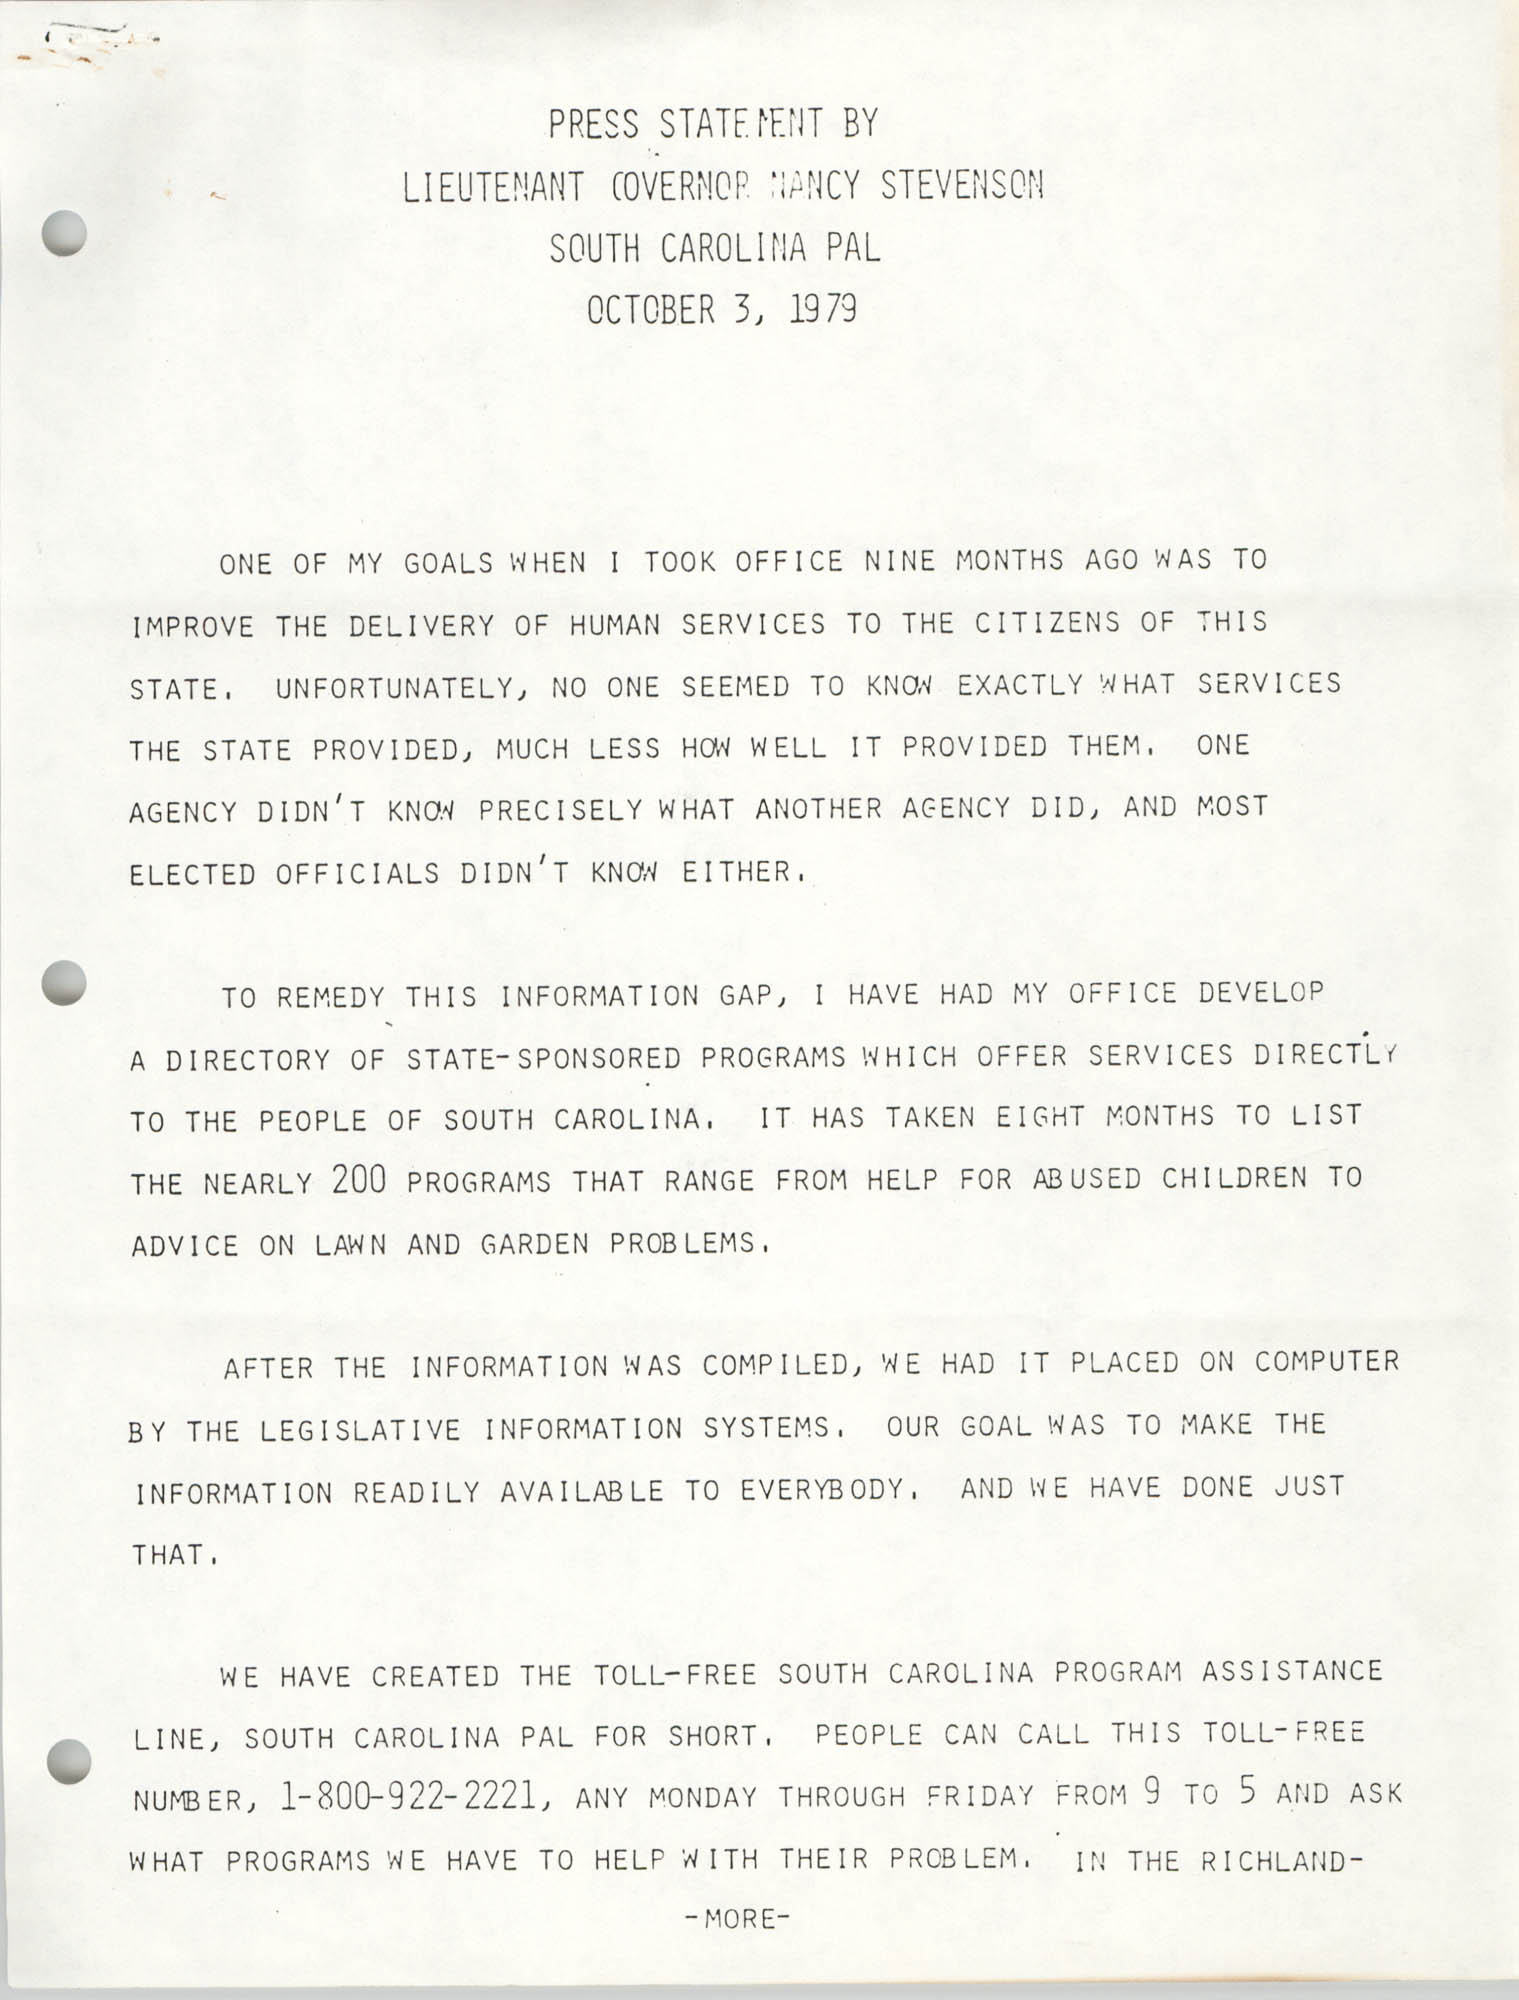 Press Statement by Lieutenant Governor Nancy Stevenson, October 3, 1979